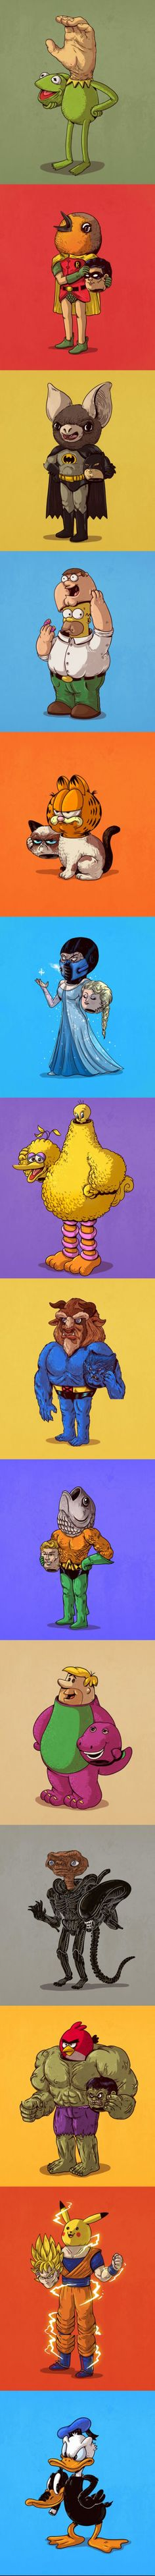 Iconic Characters Unmasked (By Alex Solis) Funny Art, Funny Memes, Funny Riddles, Silly Memes, Iconic Characters, Funny Comics, Funny Cartoons, Geek Culture, Cartoon Art